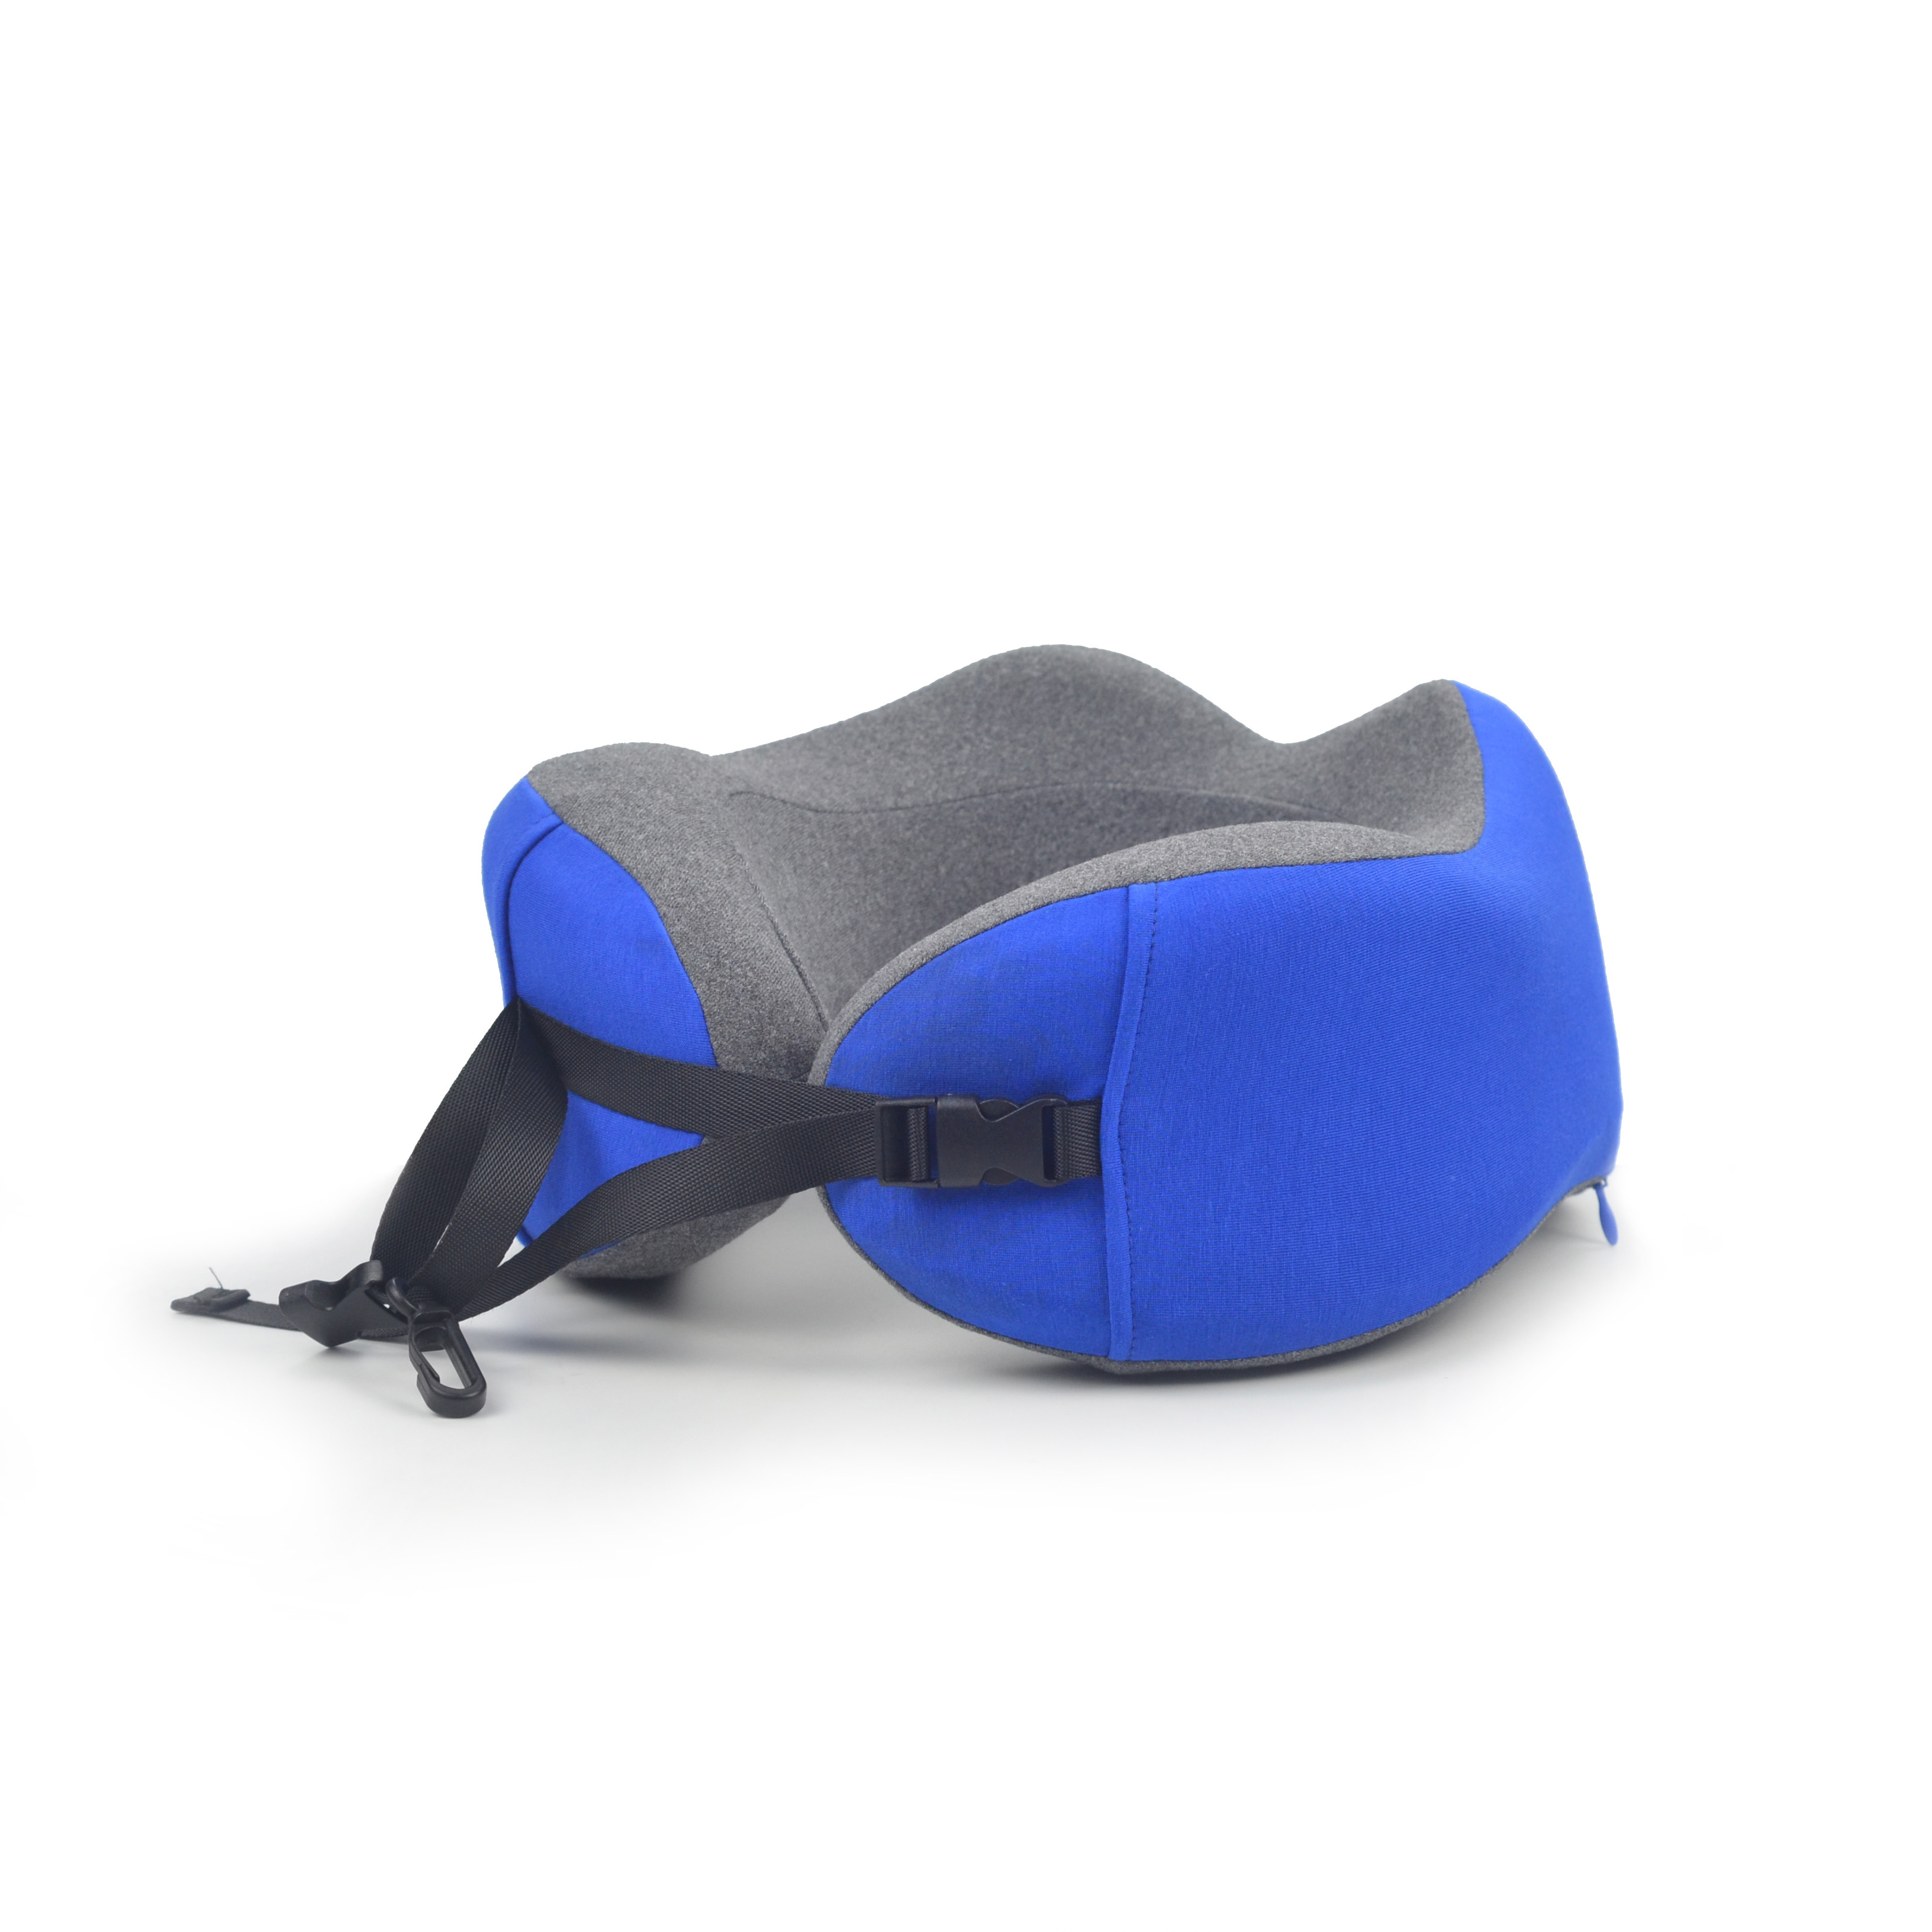 Blue gray custom travel pillow foldable travel neck pillow